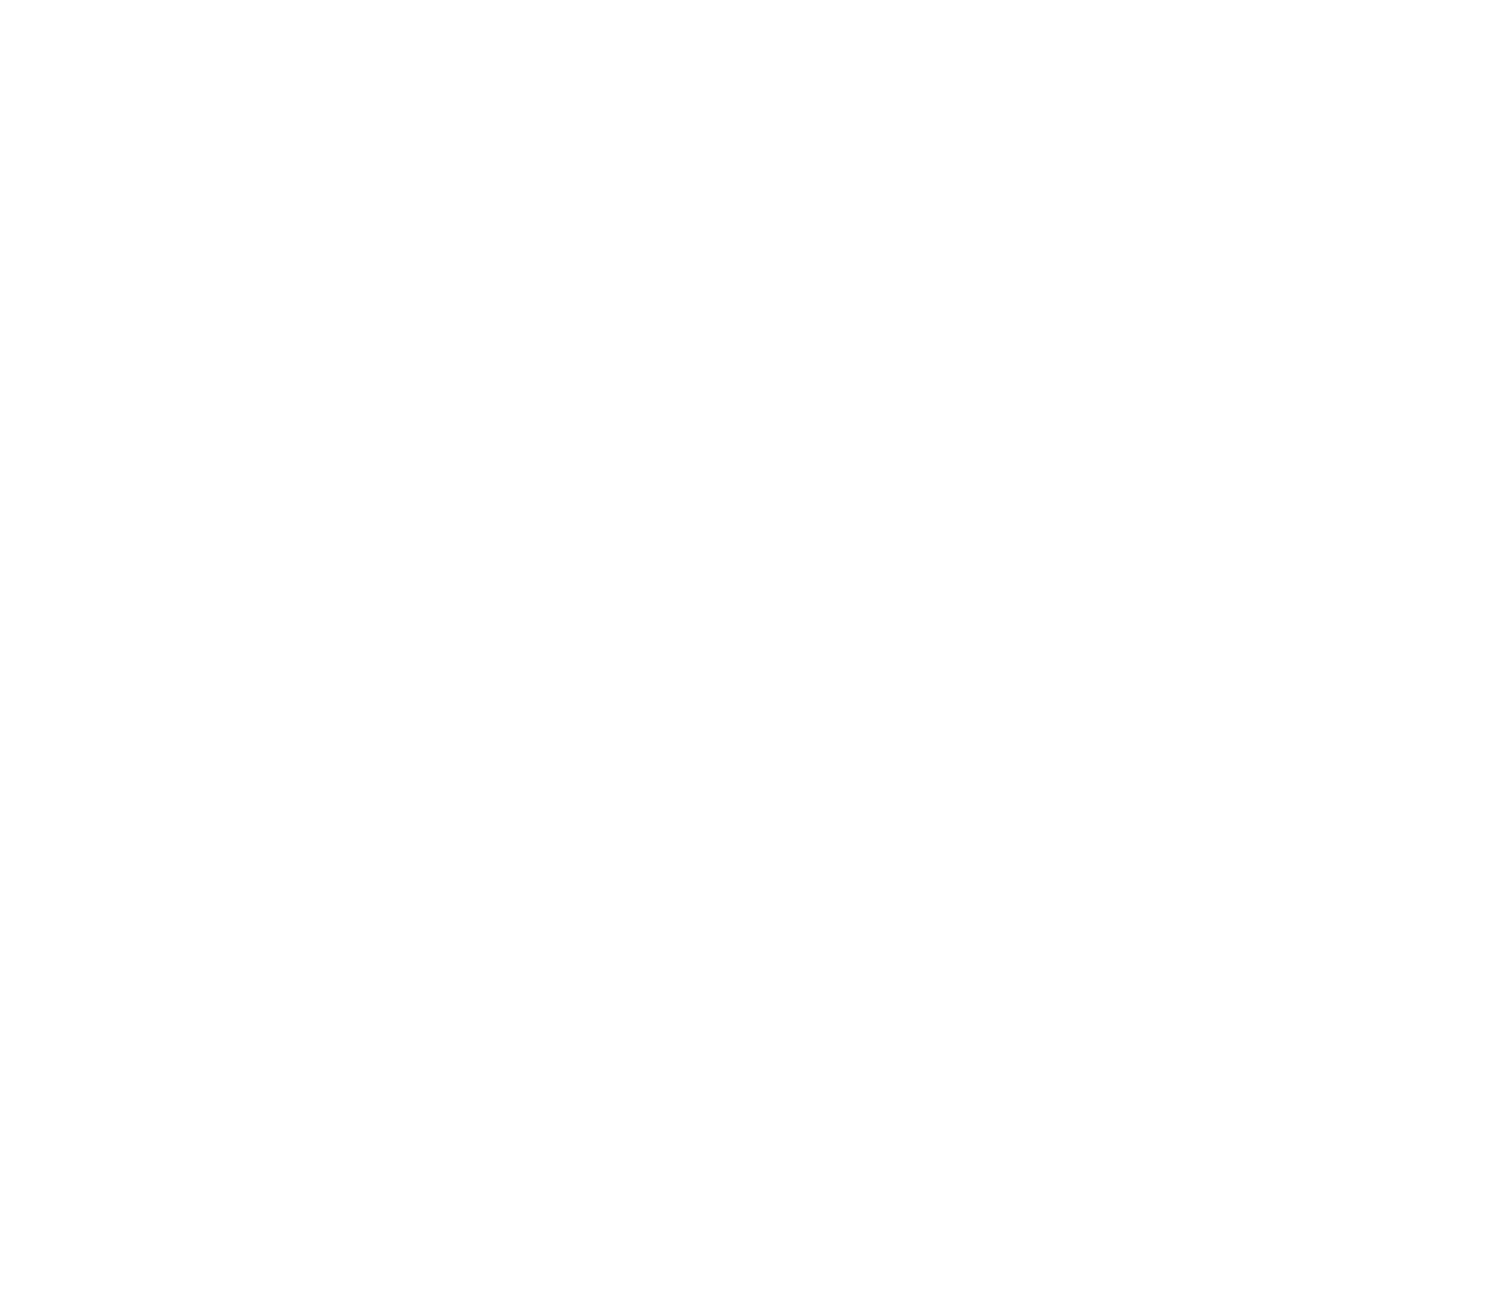 VC Twenty - The Young Adult Community of Vineyard Columbus